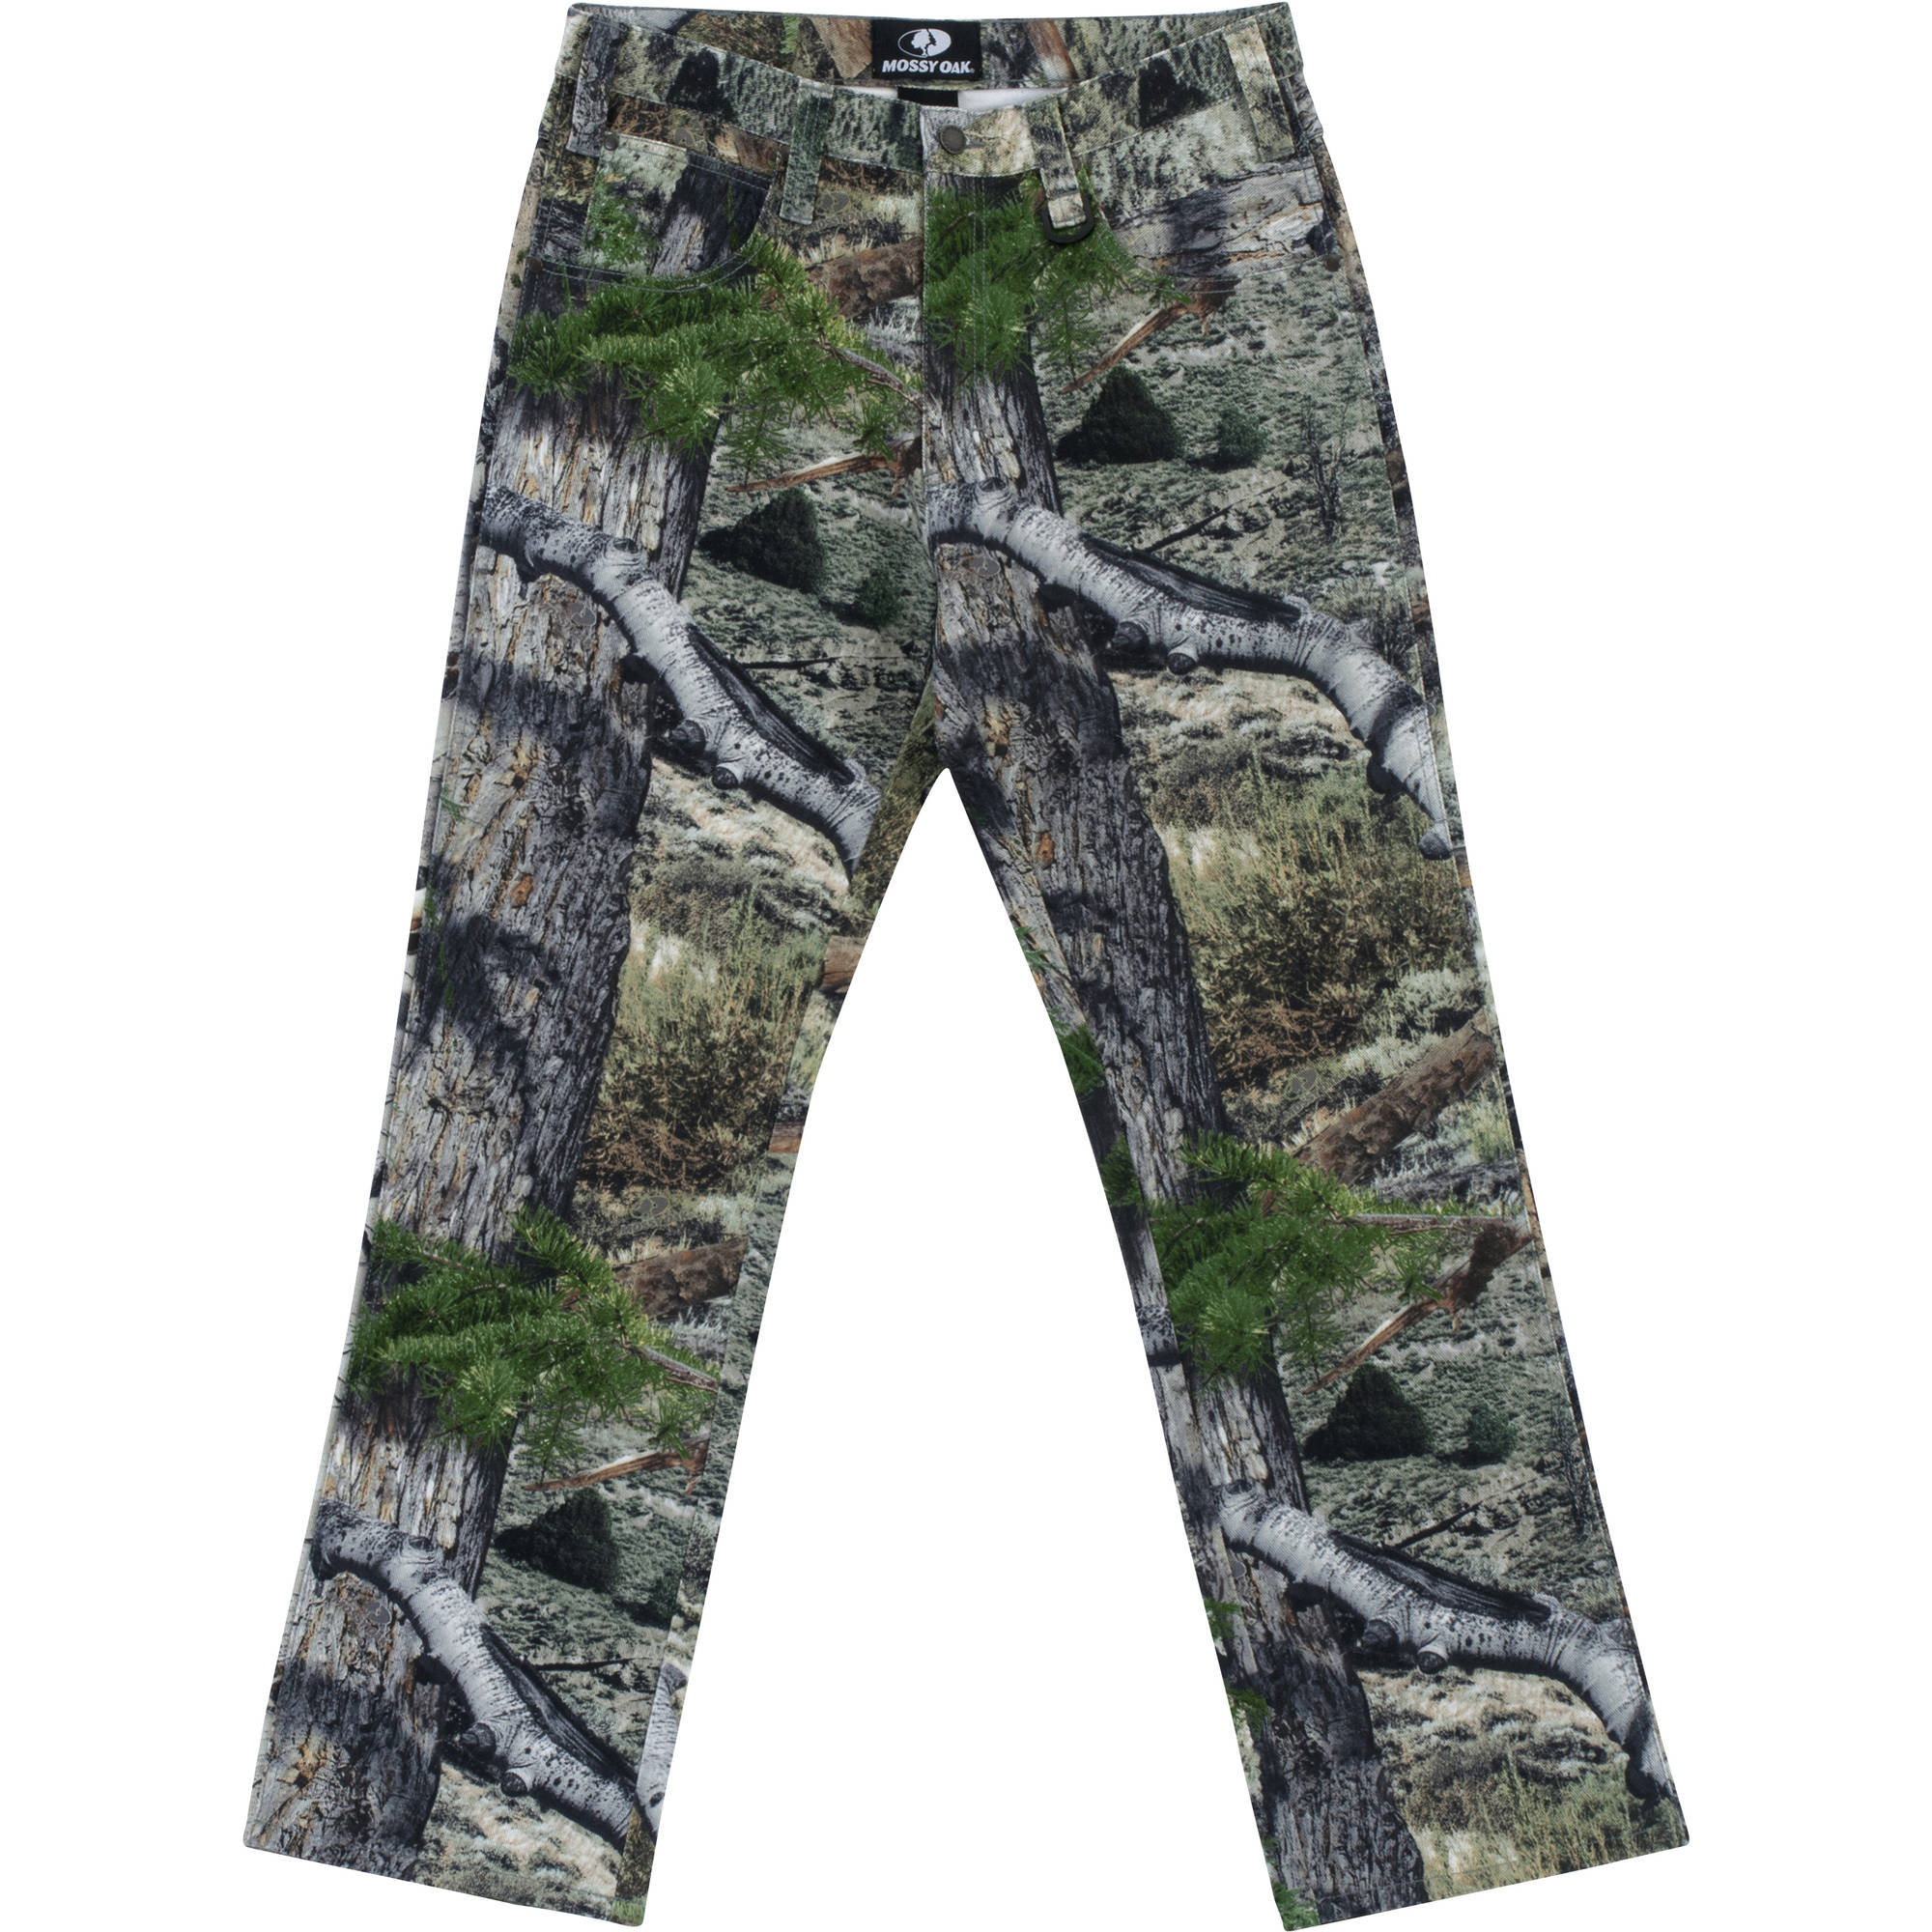 Mossy Oak Men's 5-Pocket Pants, Available in Multiple Patterns